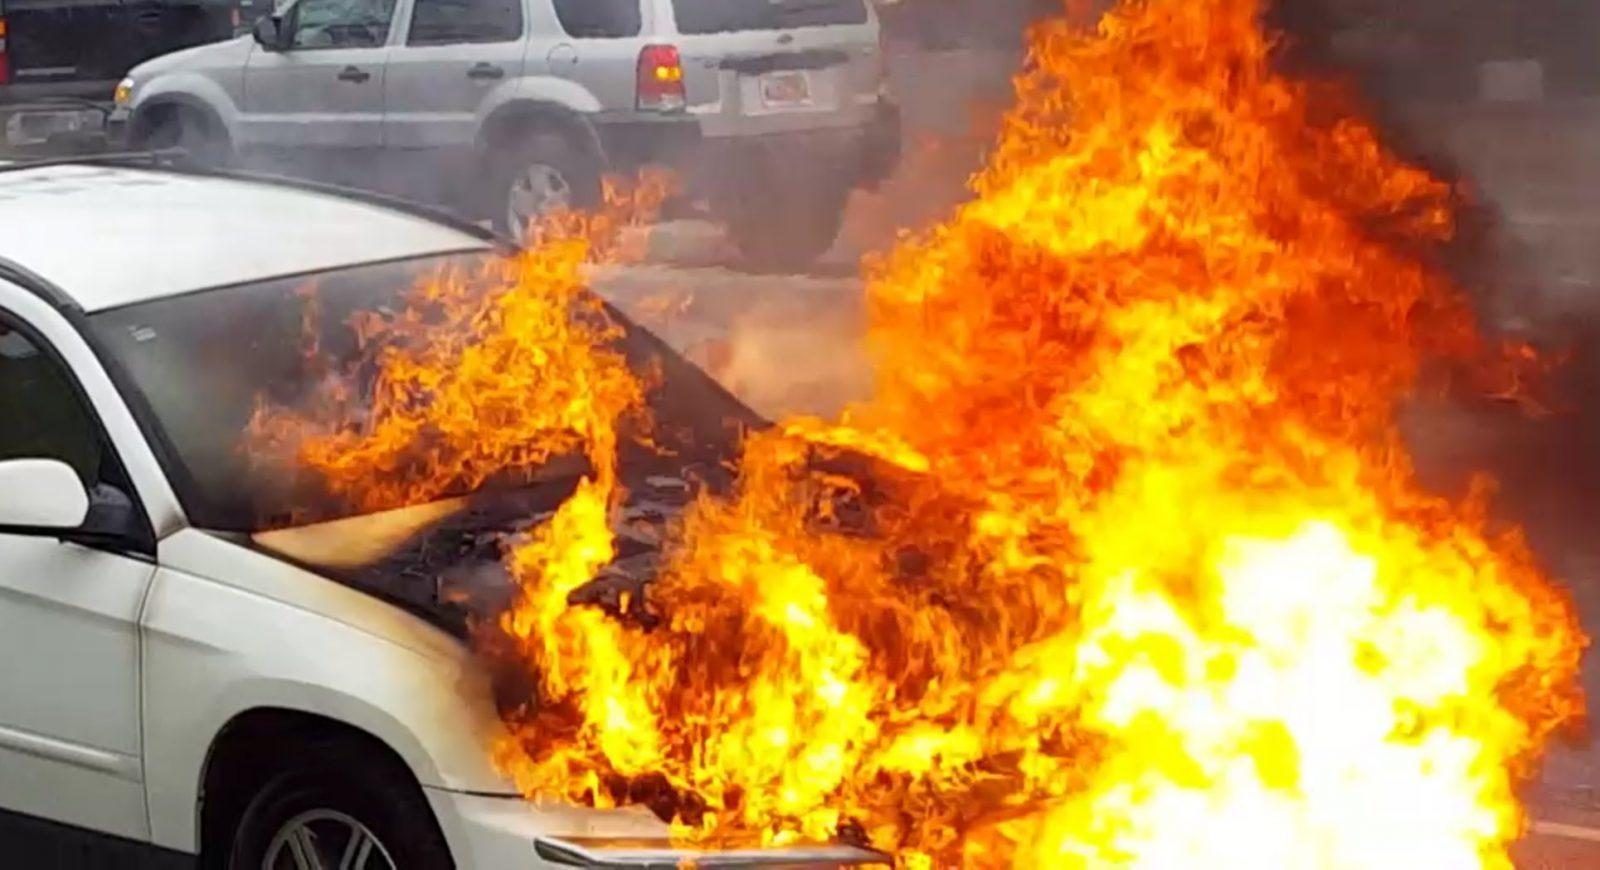 Can wiring cause fire in cars